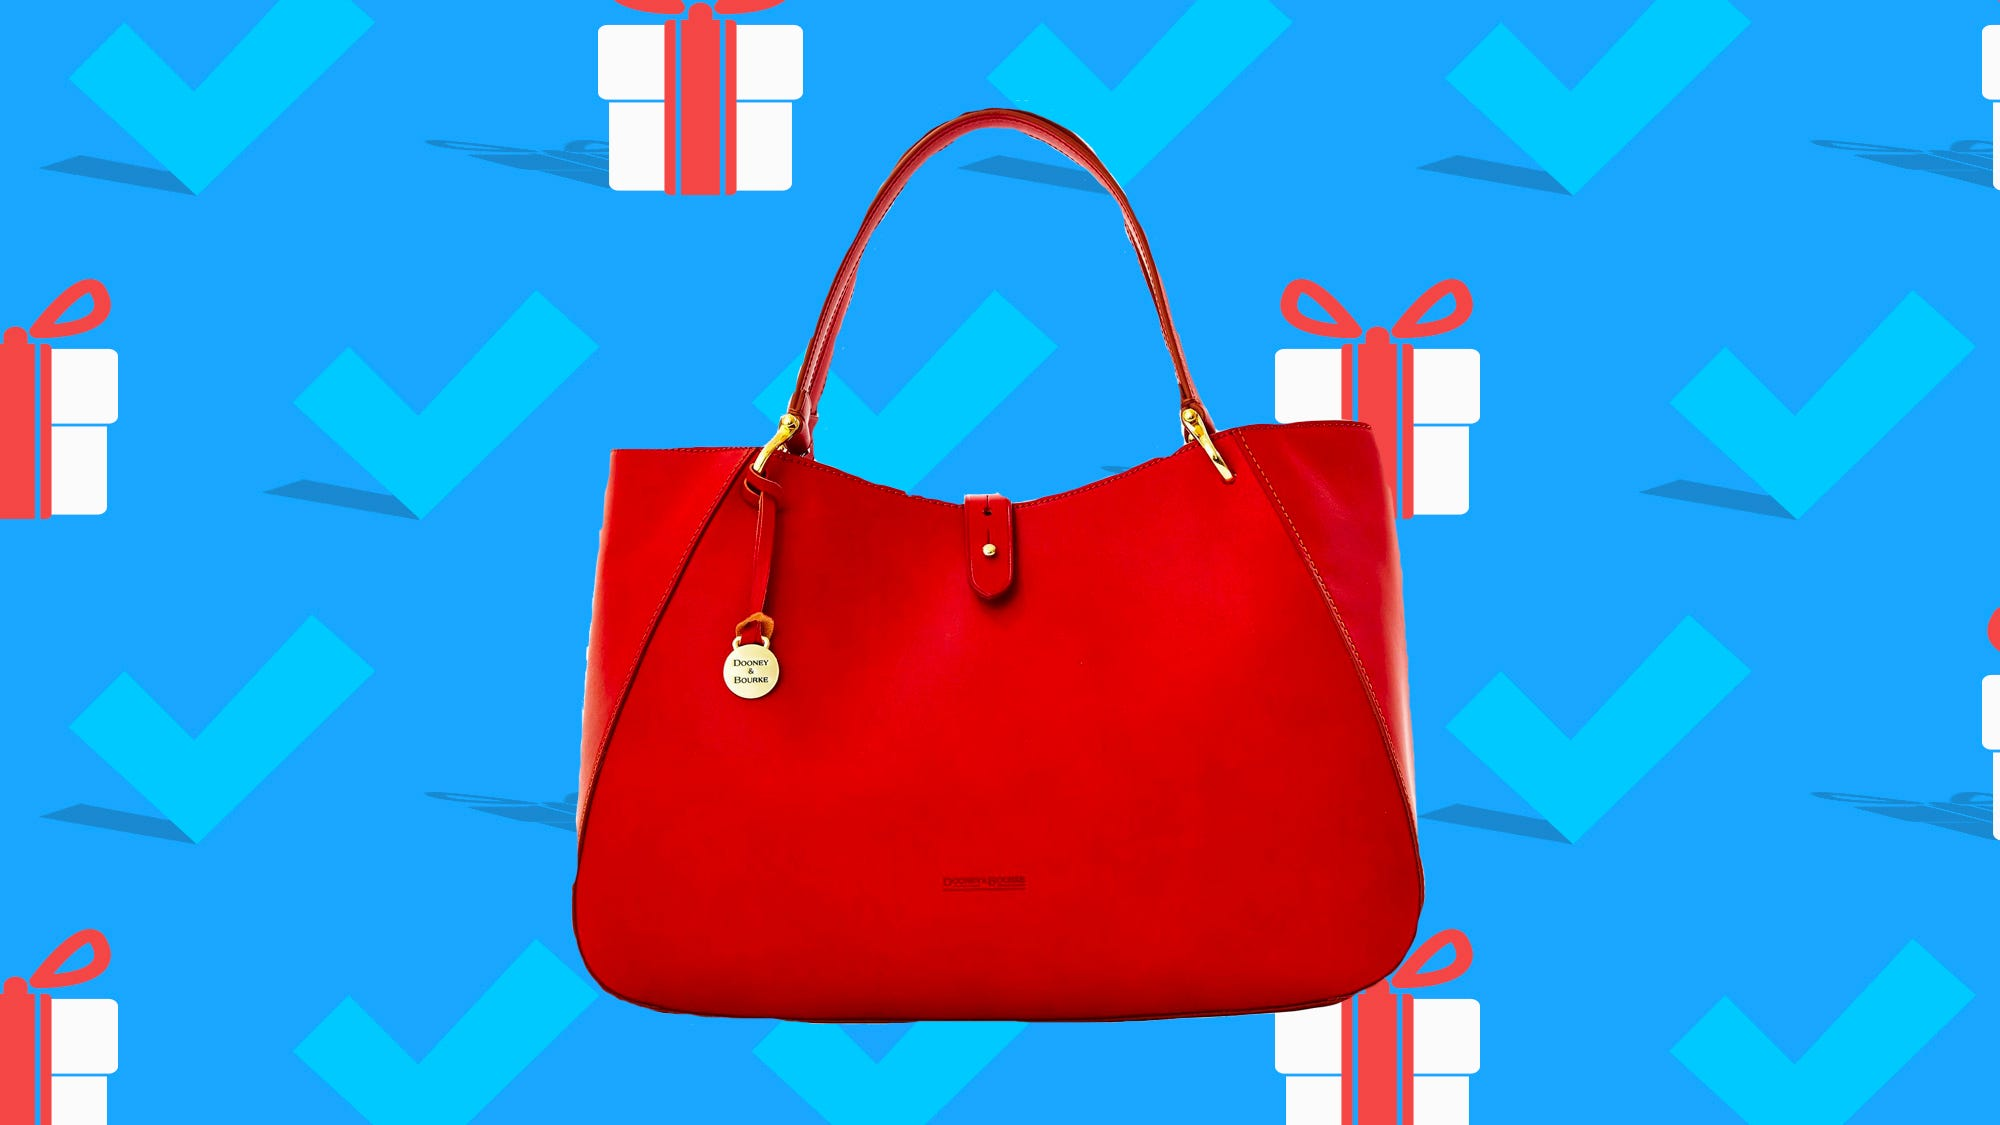 You can get Dooney & Bourke's iconic handbags and more on sale for Black Friday